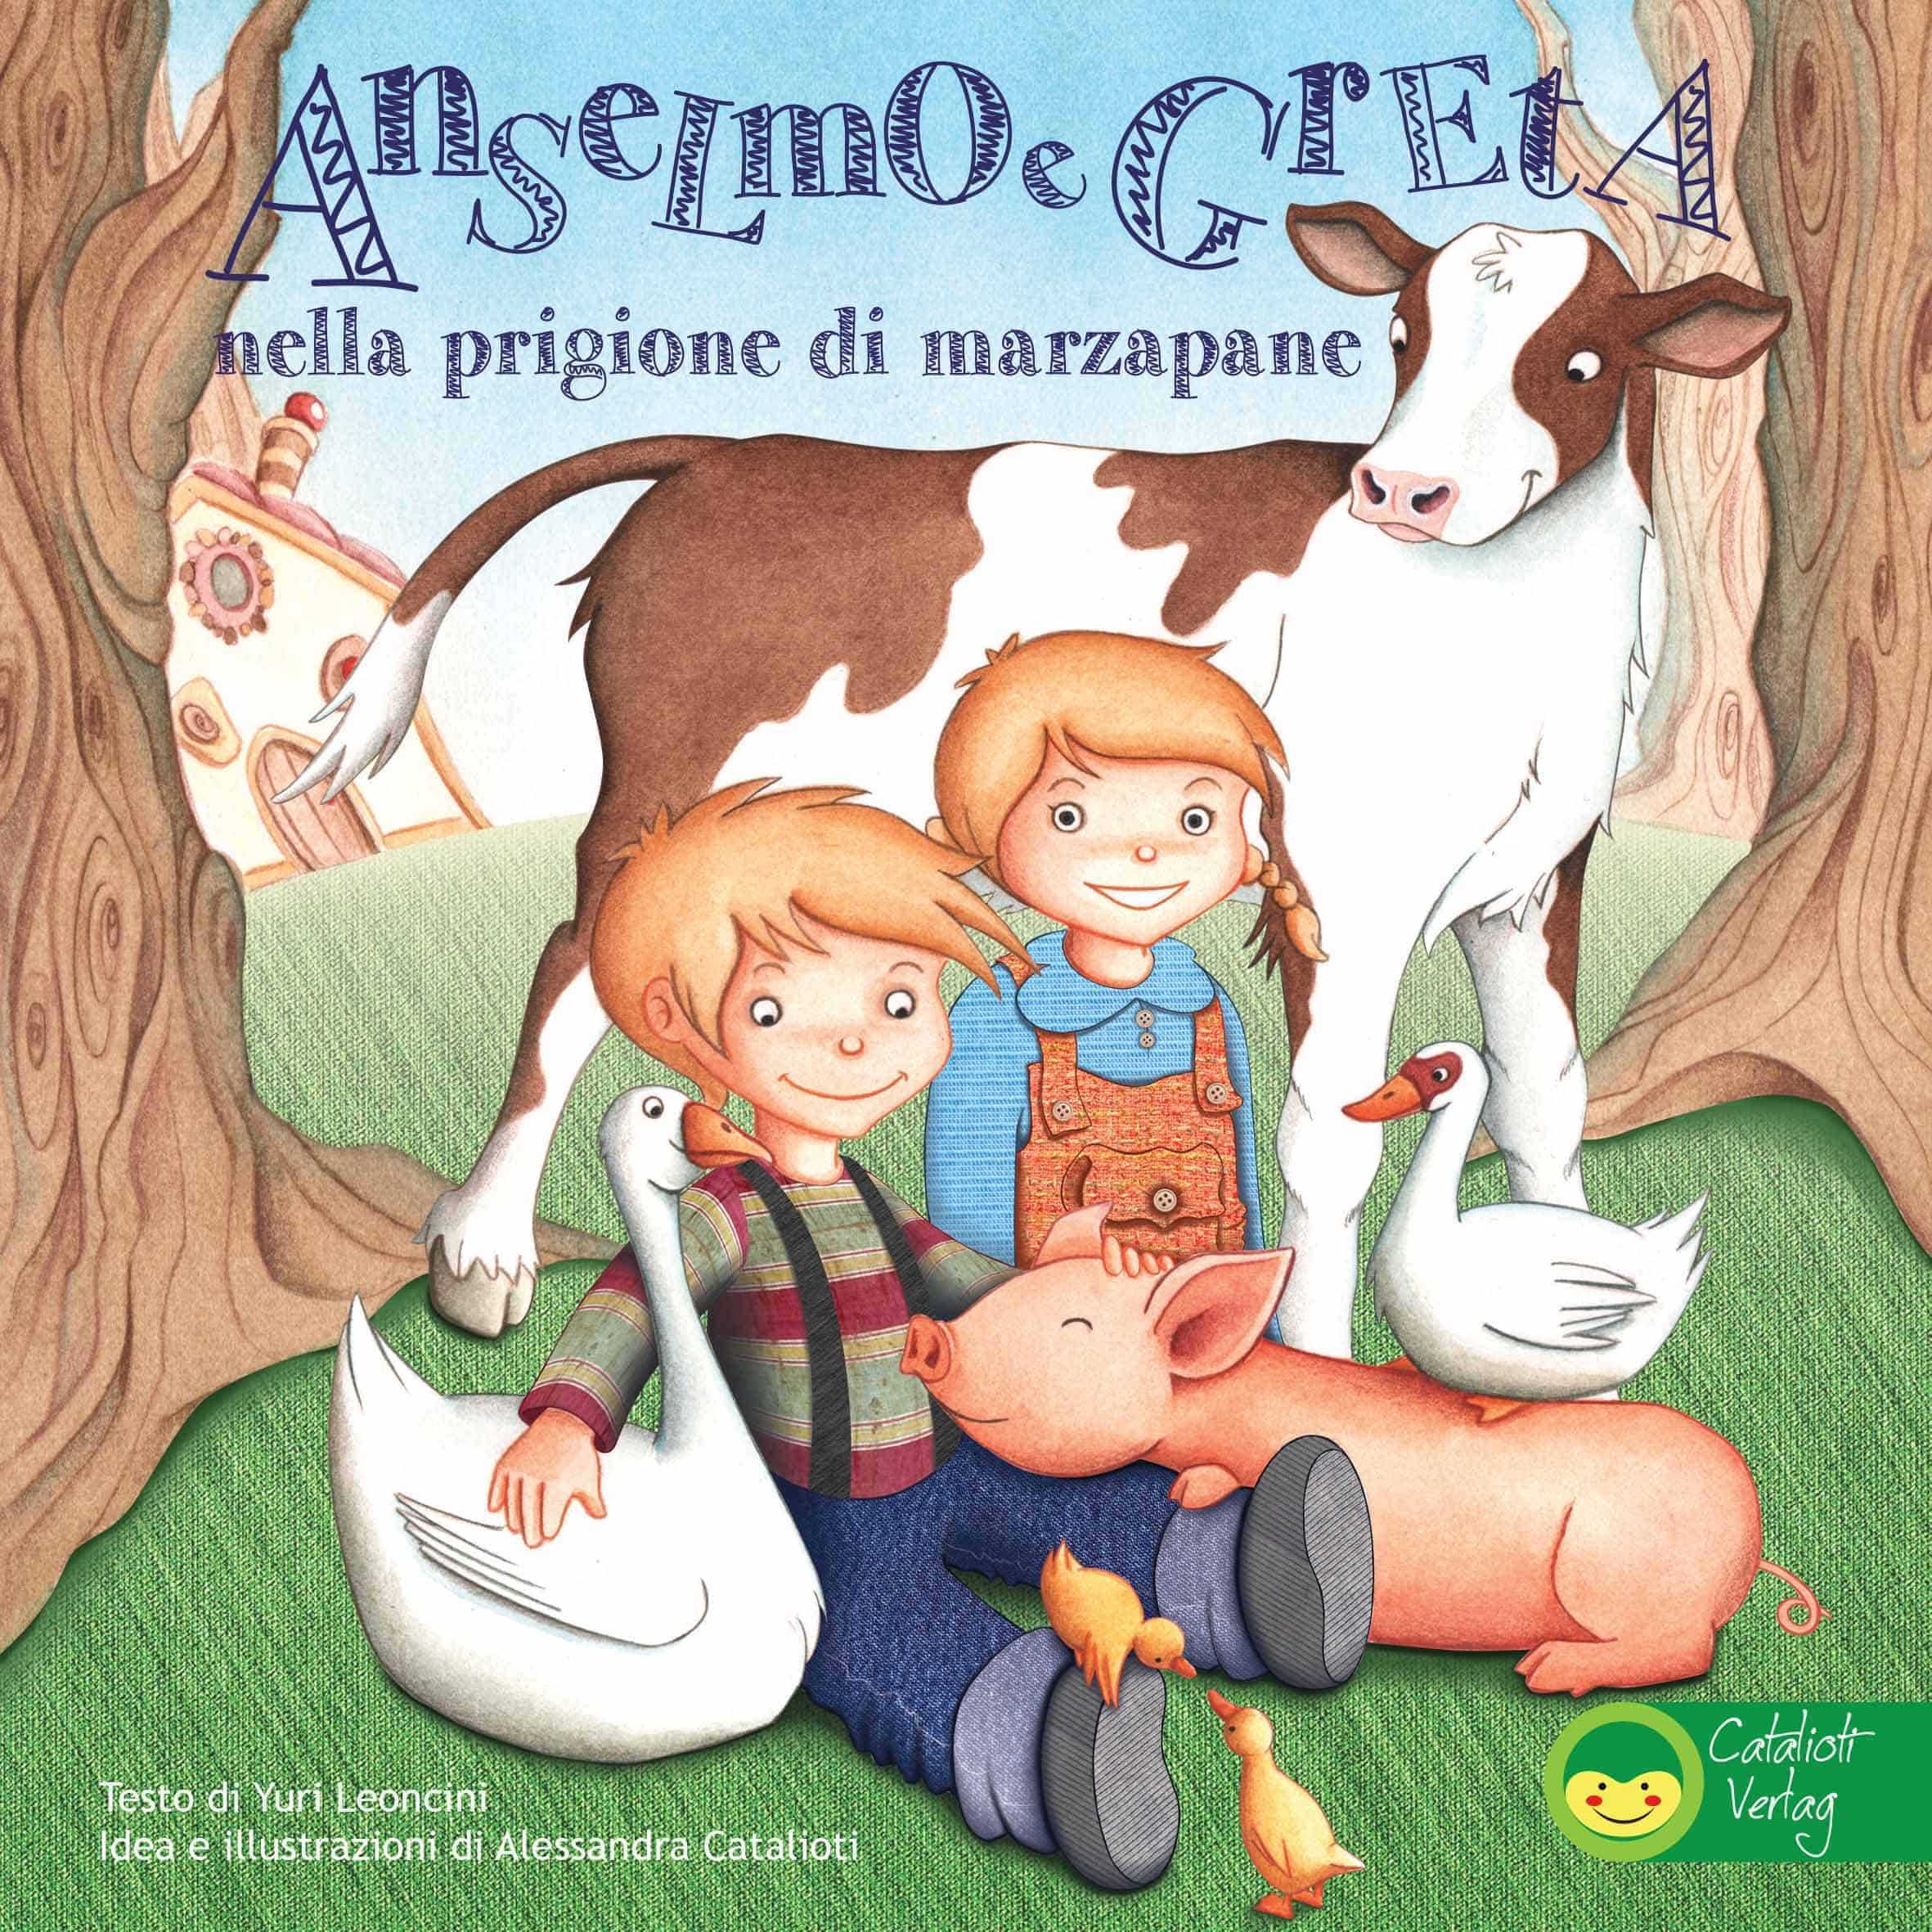 Illustrated children's book Anselmo e Greta